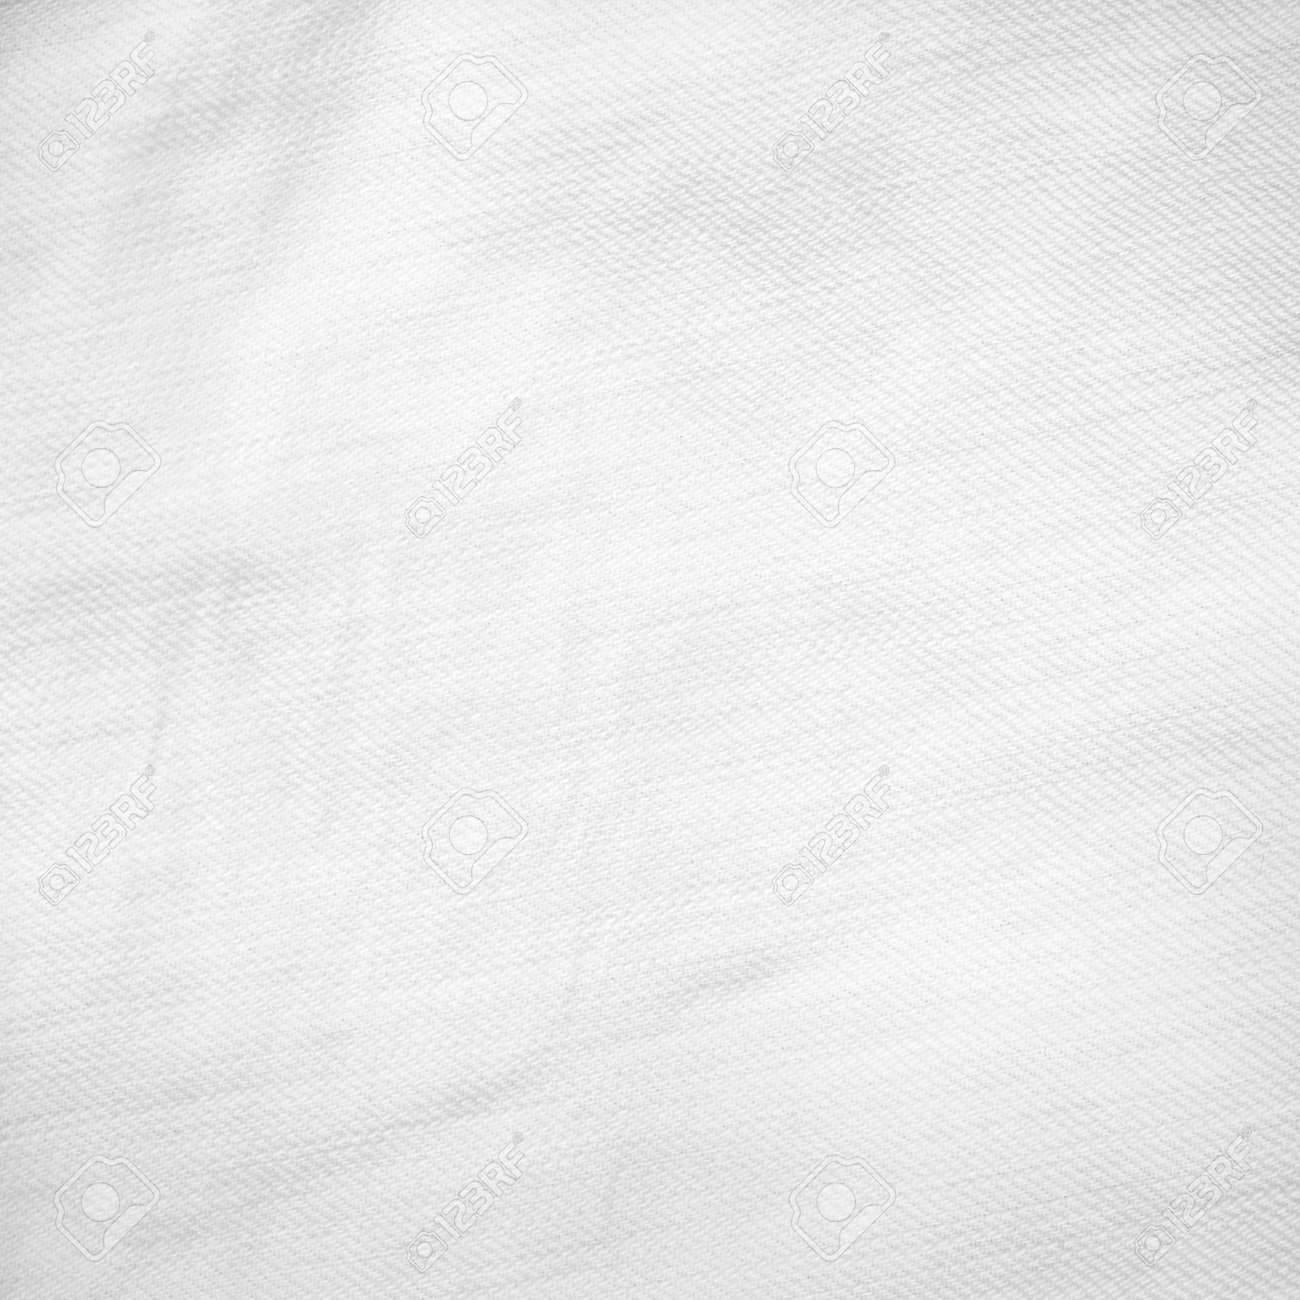 white background old paper texture canvas background stock photo